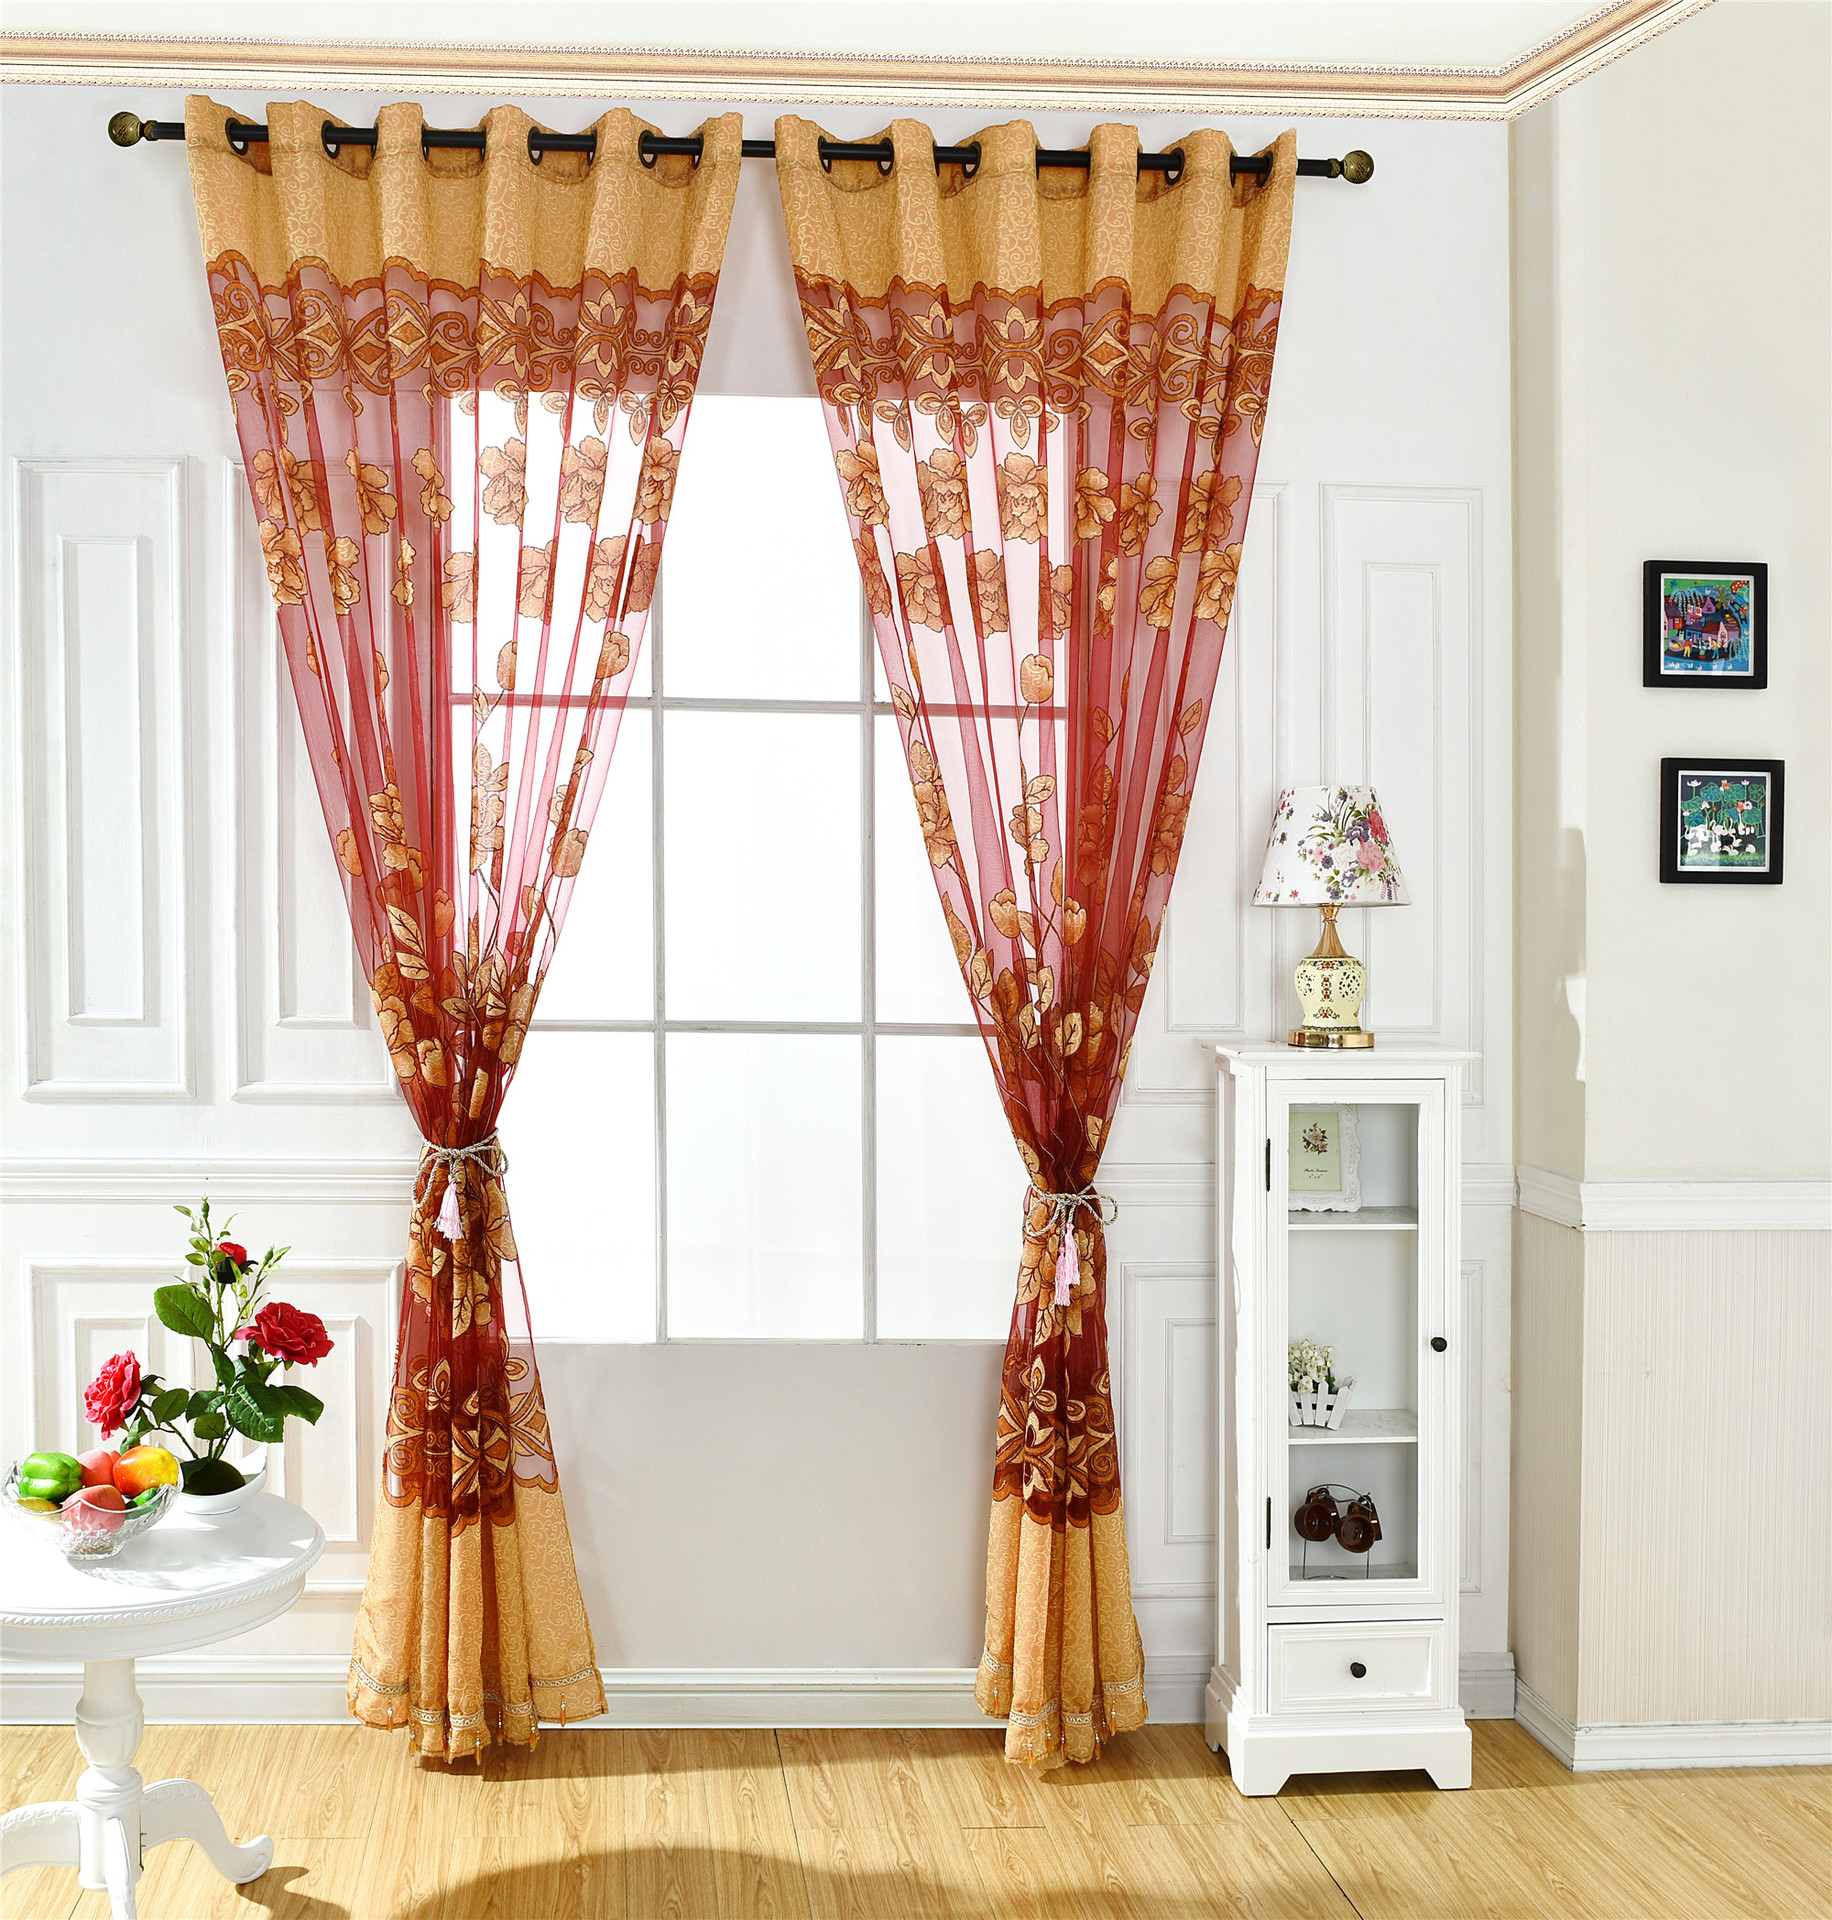 2020 120 250cm Living Room Curtains Simple And Modern Beautiful And Romantic Jacquard Burnt Half Shade Easy To Install Rod Pocket Curtain From Wwdh1234 15 16 Dhgate Com